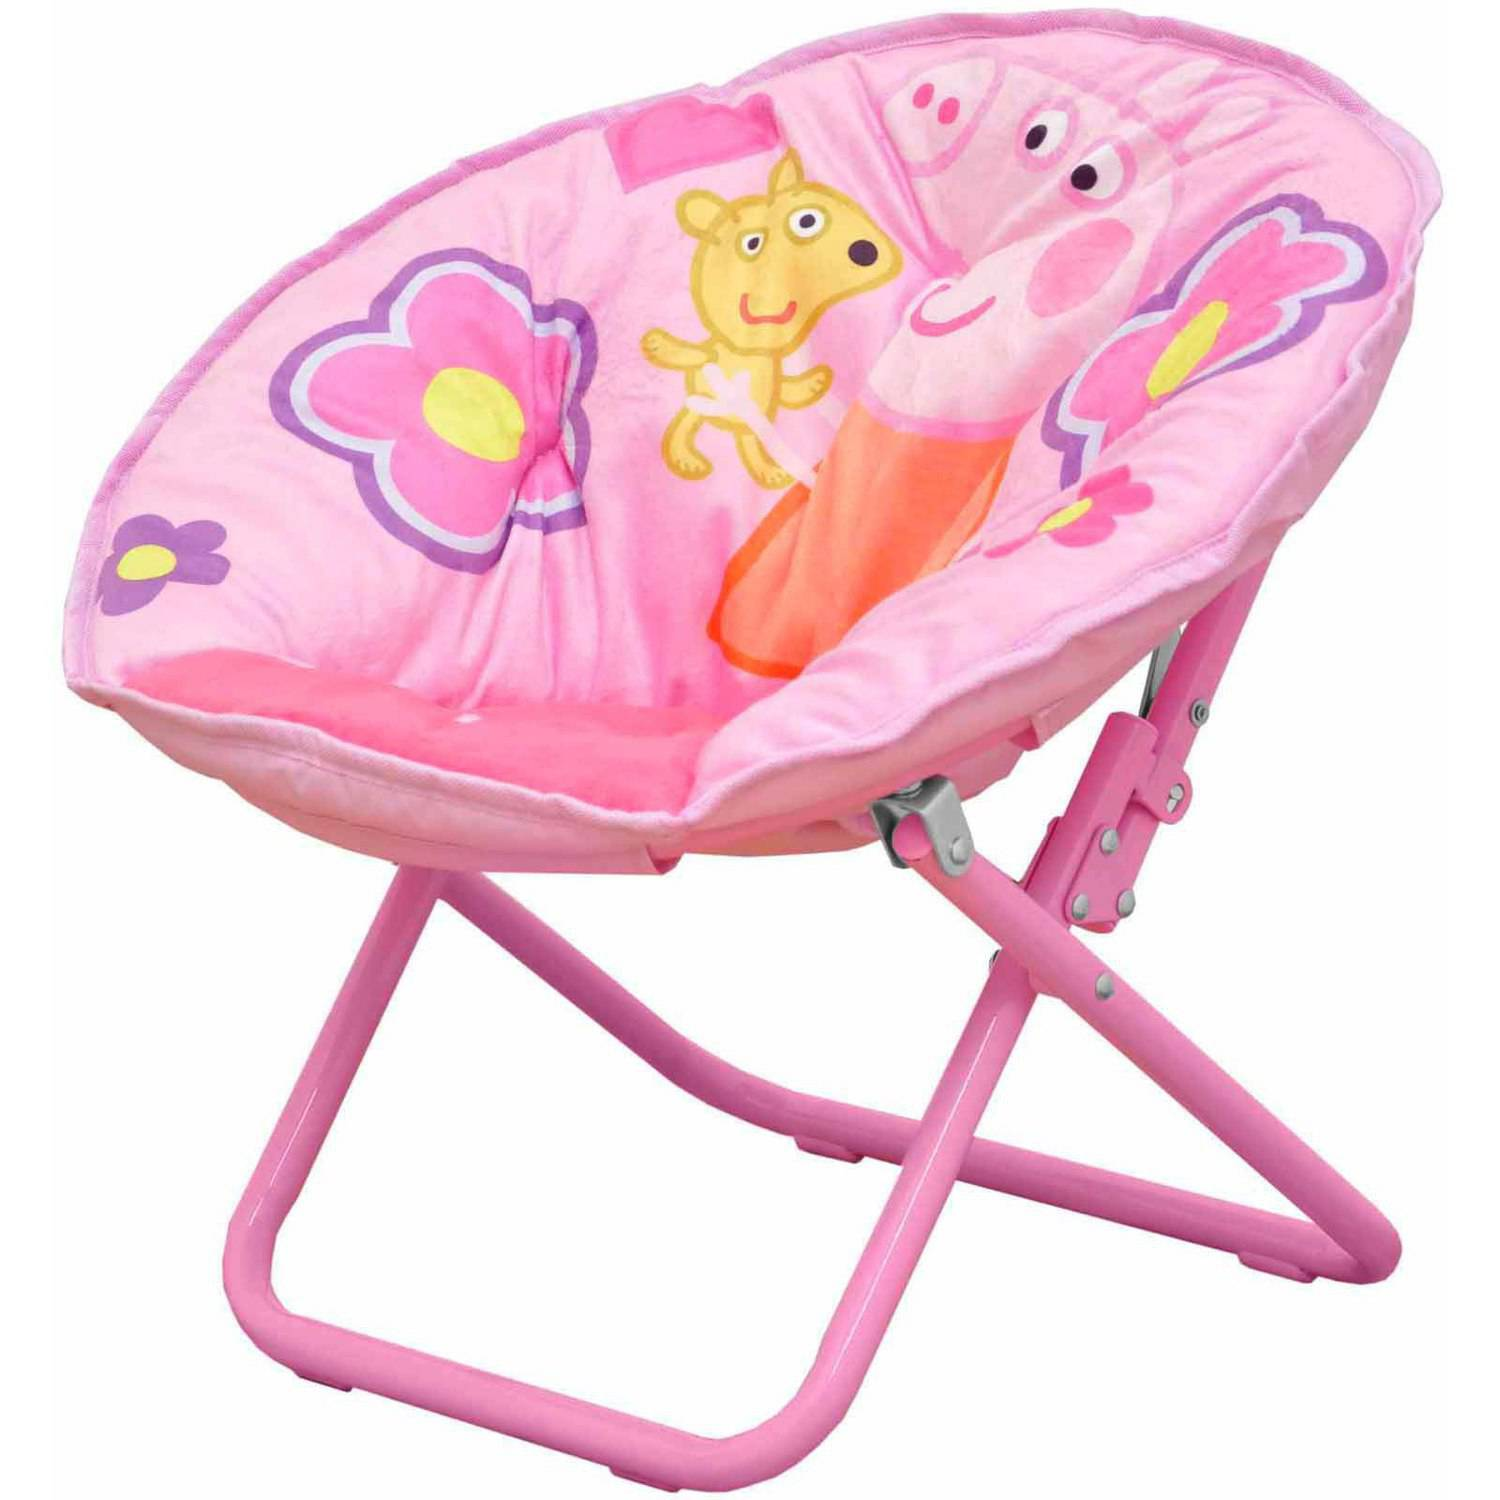 Peppa Pig Saucer Chair